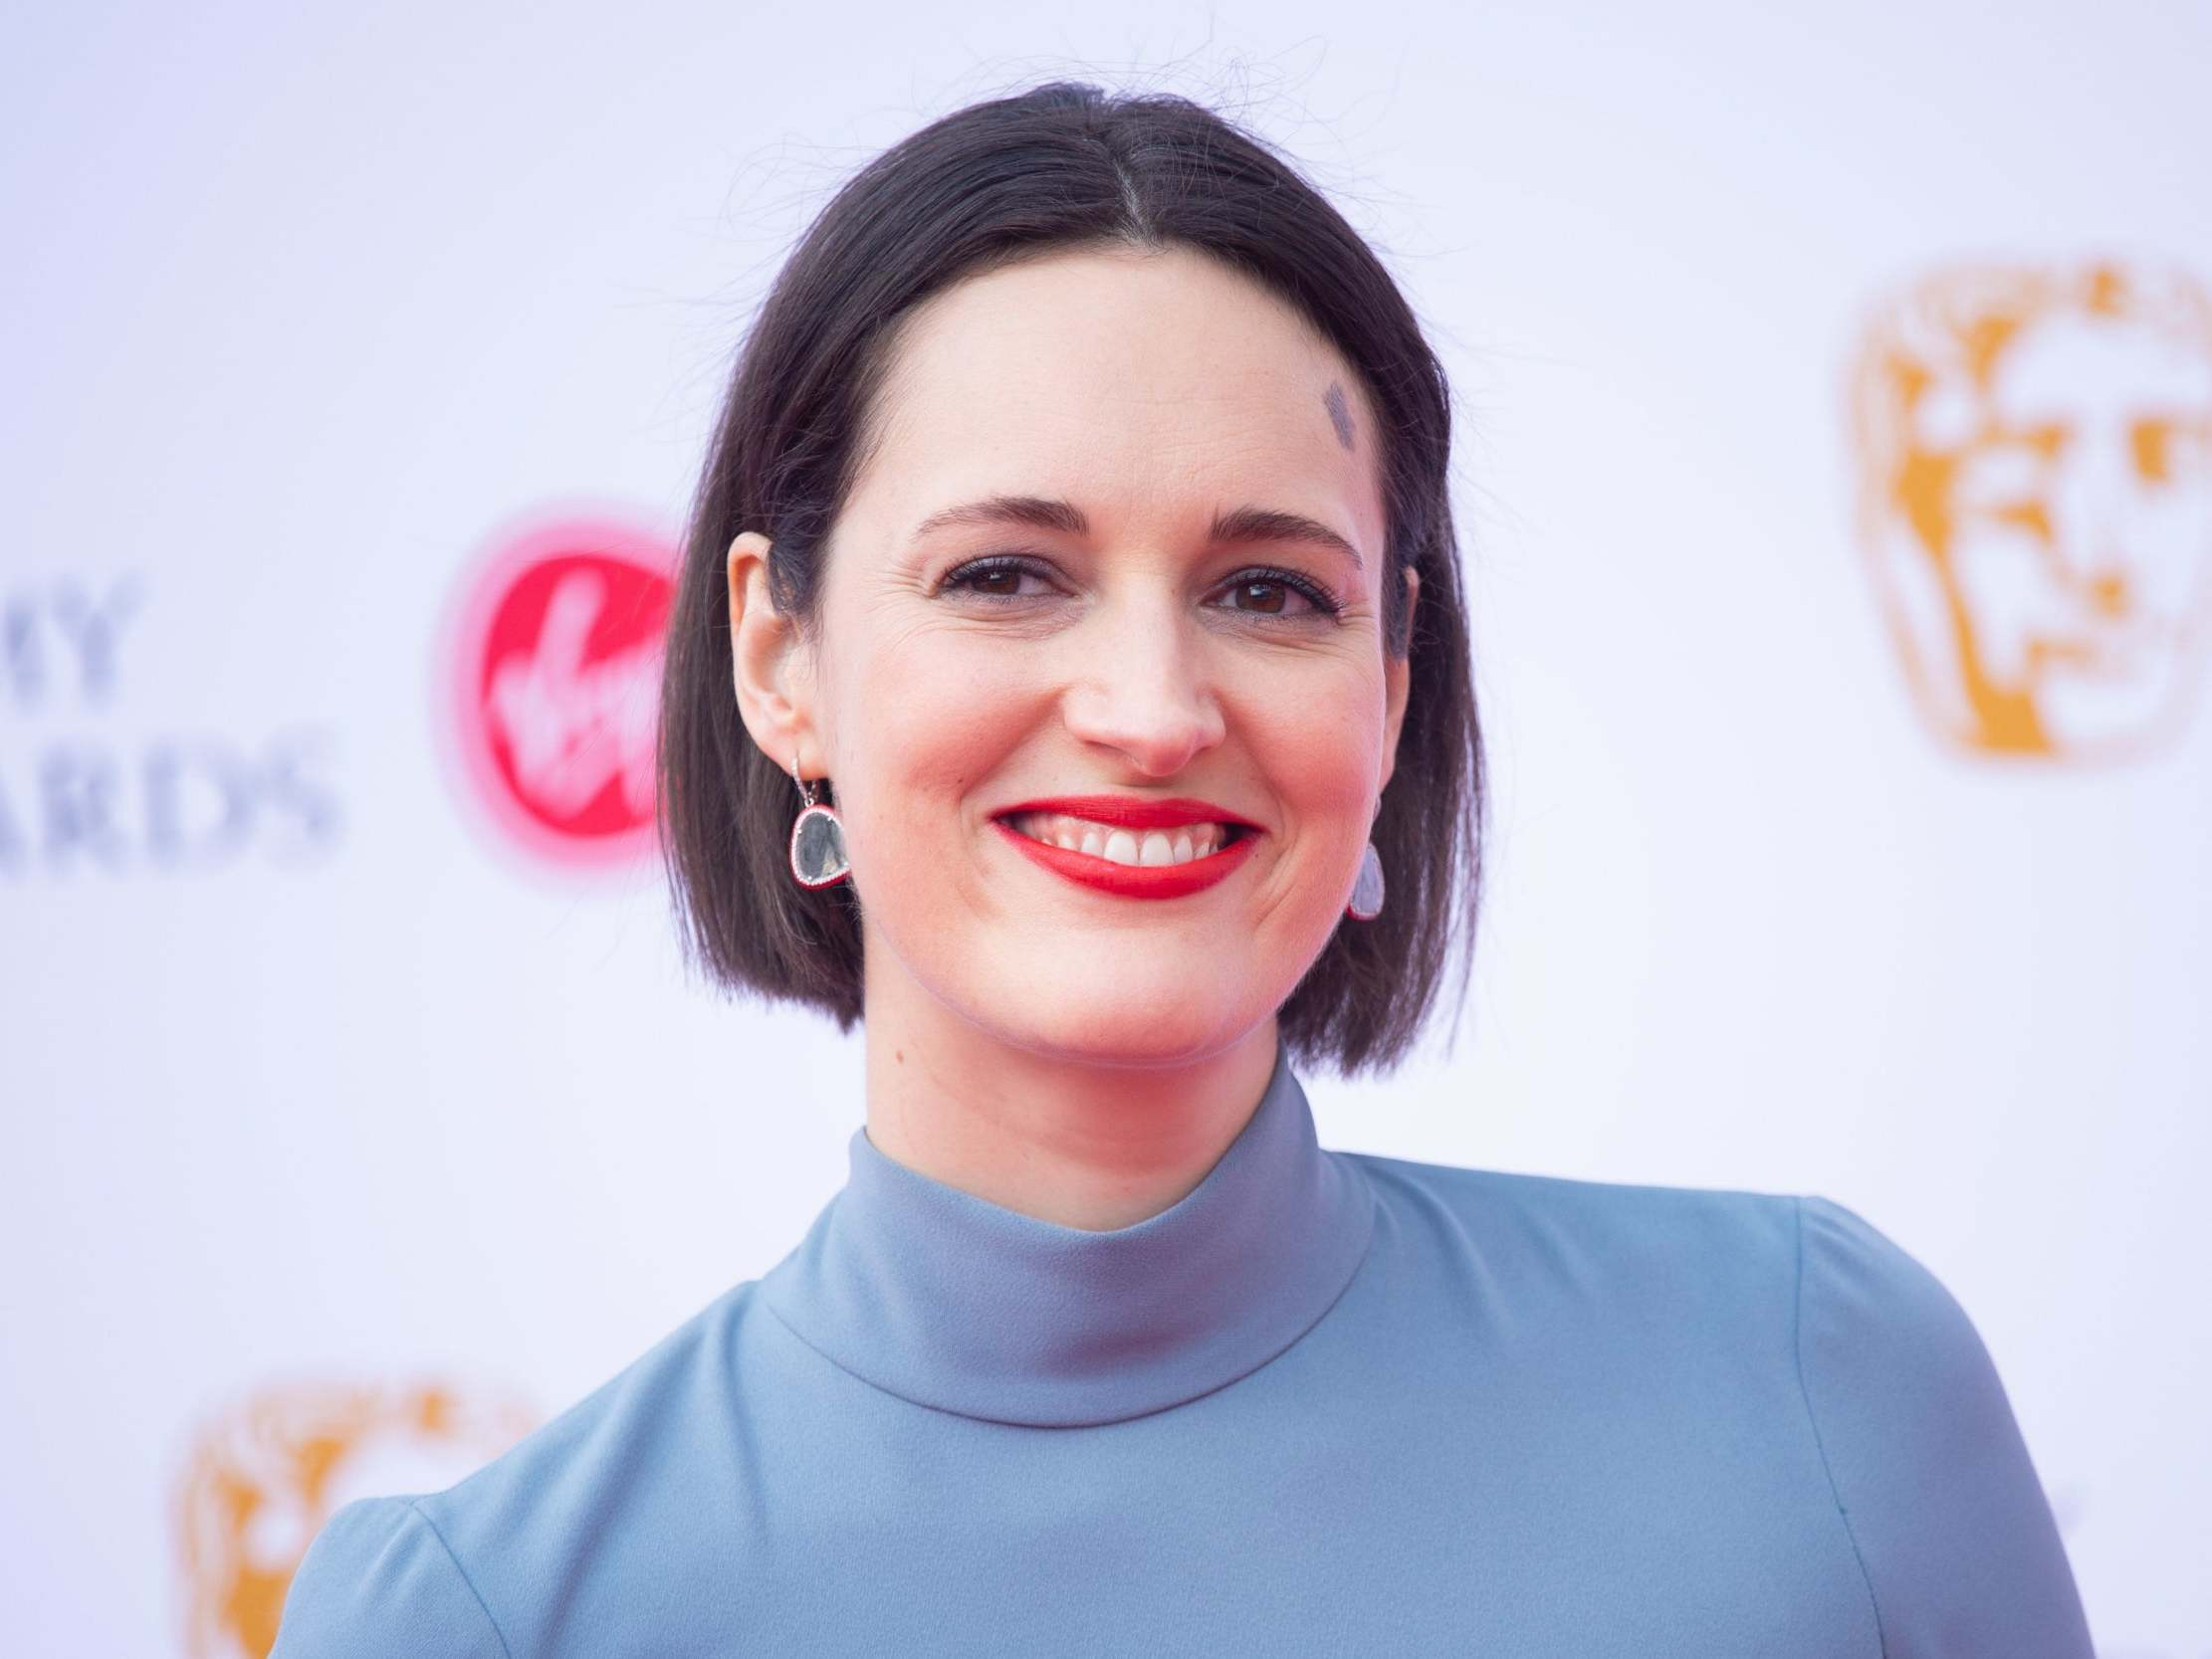 Emmy nominations 2019: Women of Fleabag triumph while Andrew Scott is snubbed